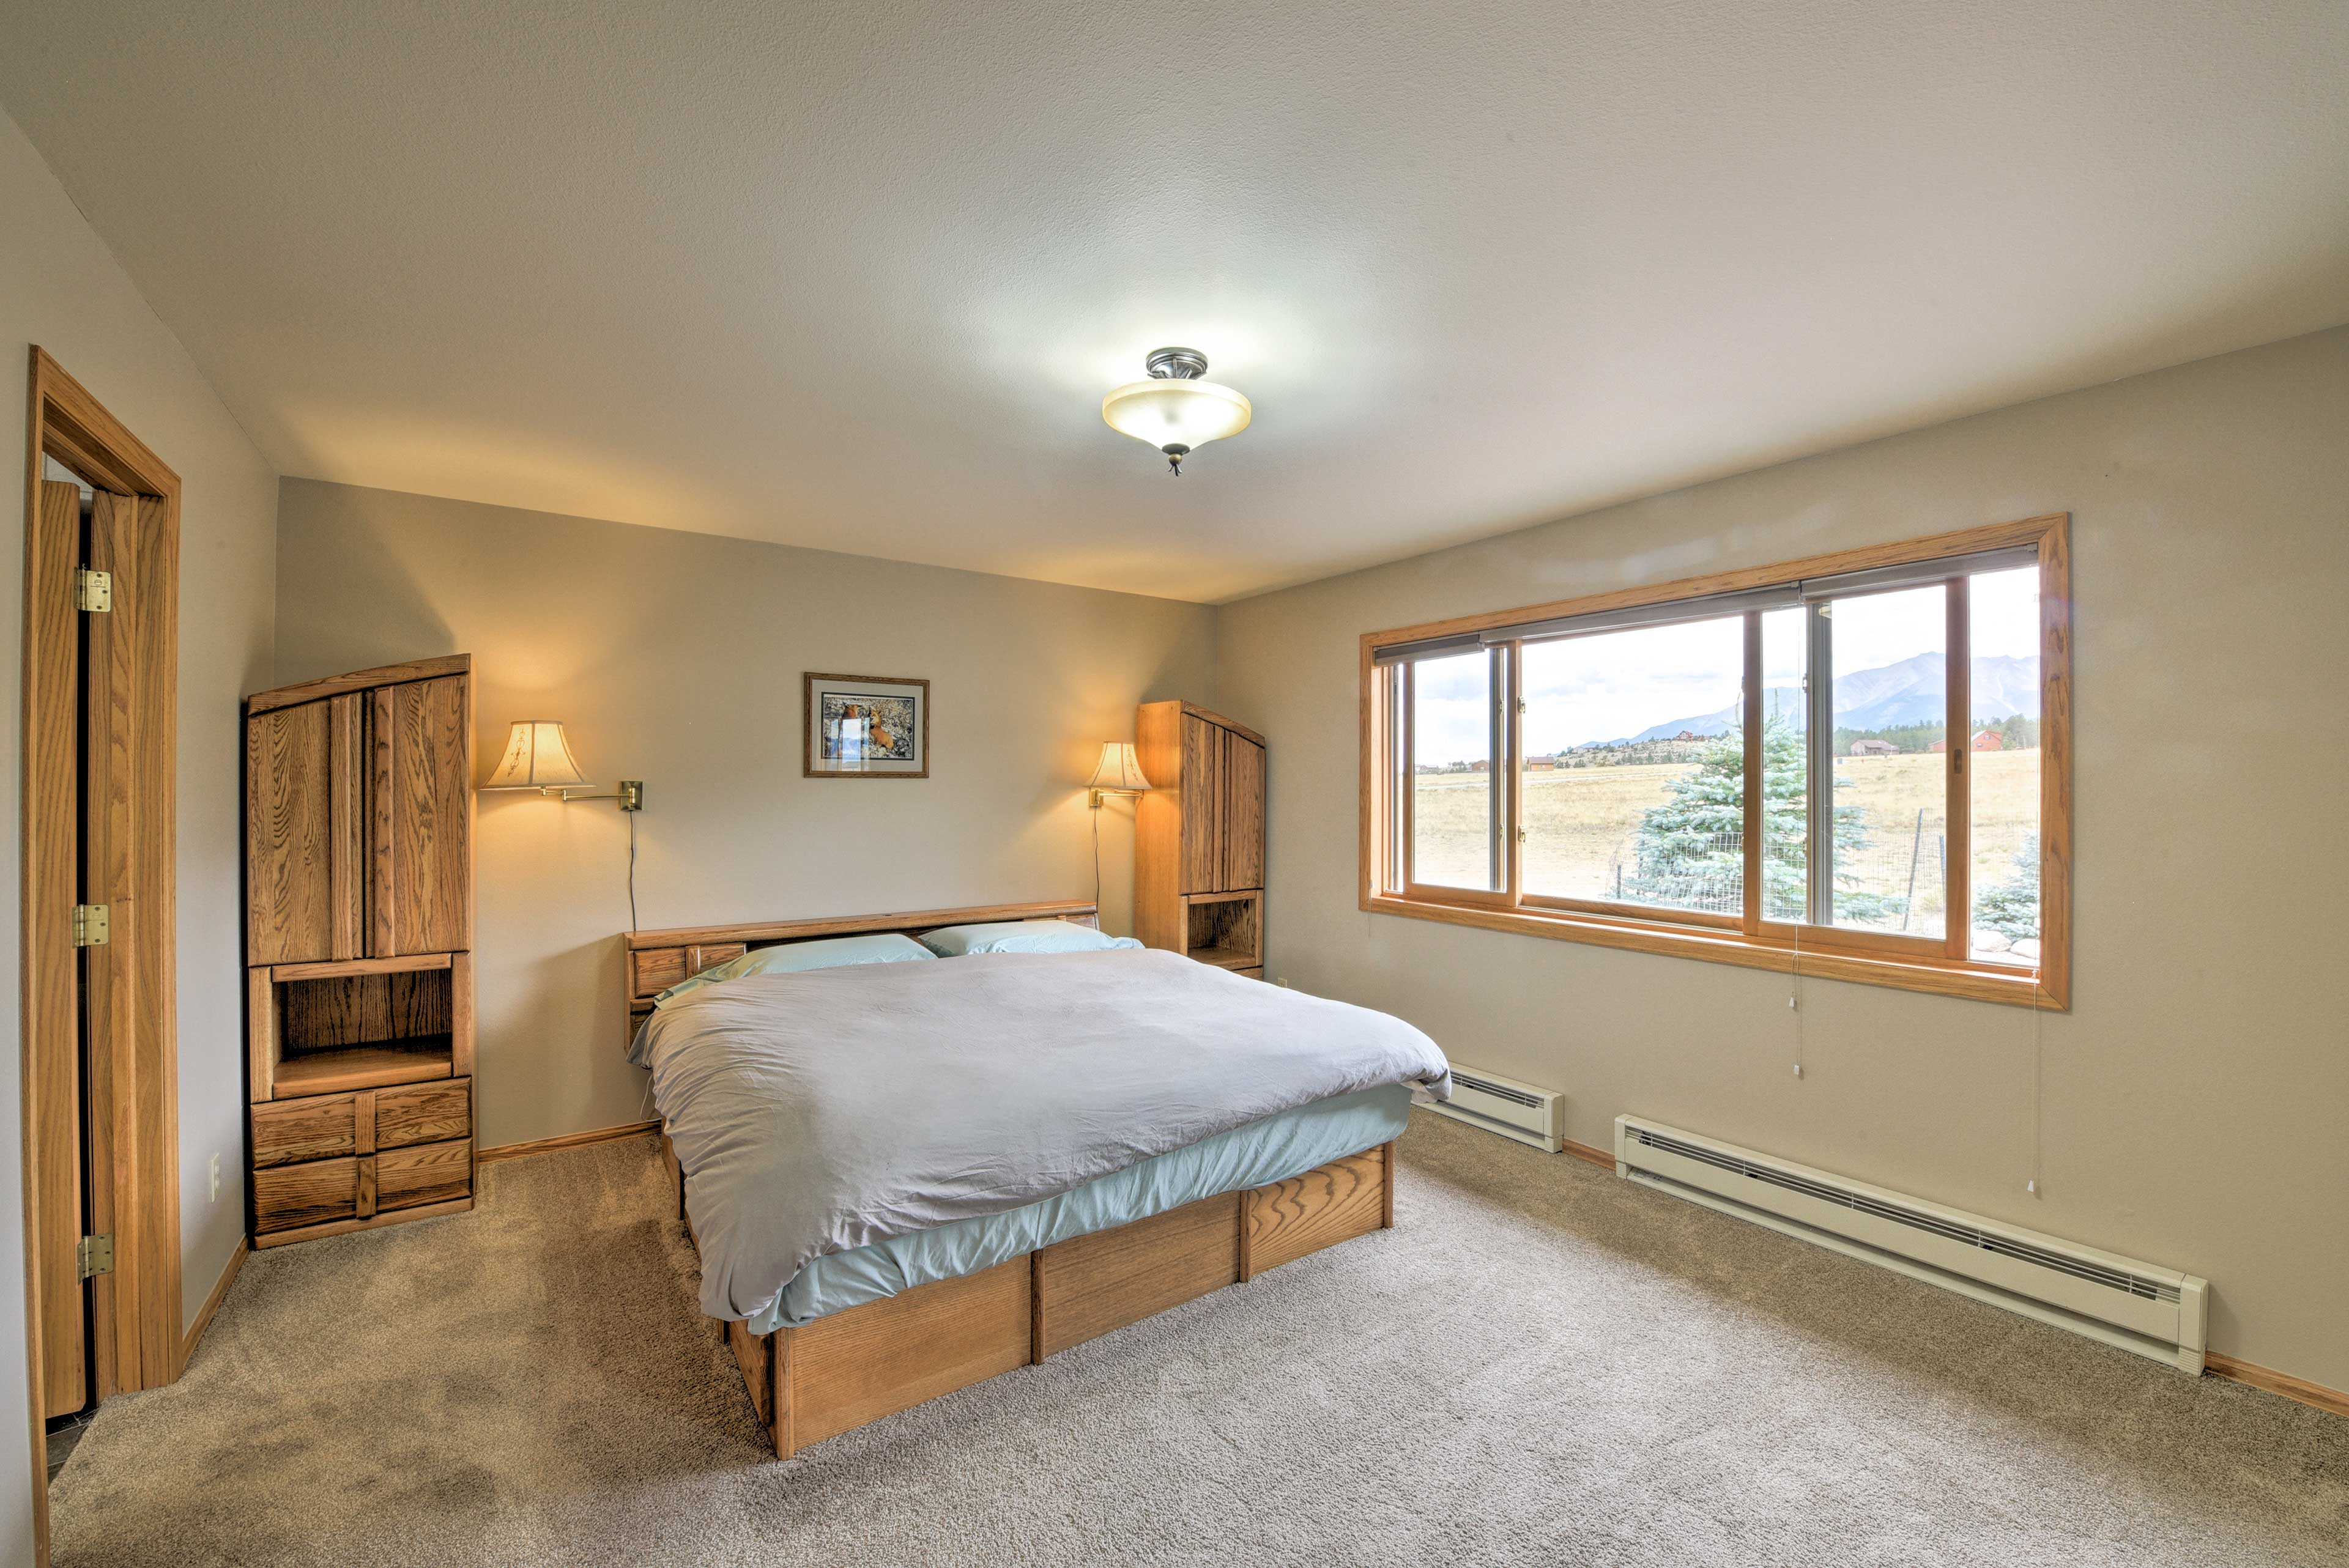 After a long day on the Colorado Trail, sprawl out on this plush king bed.